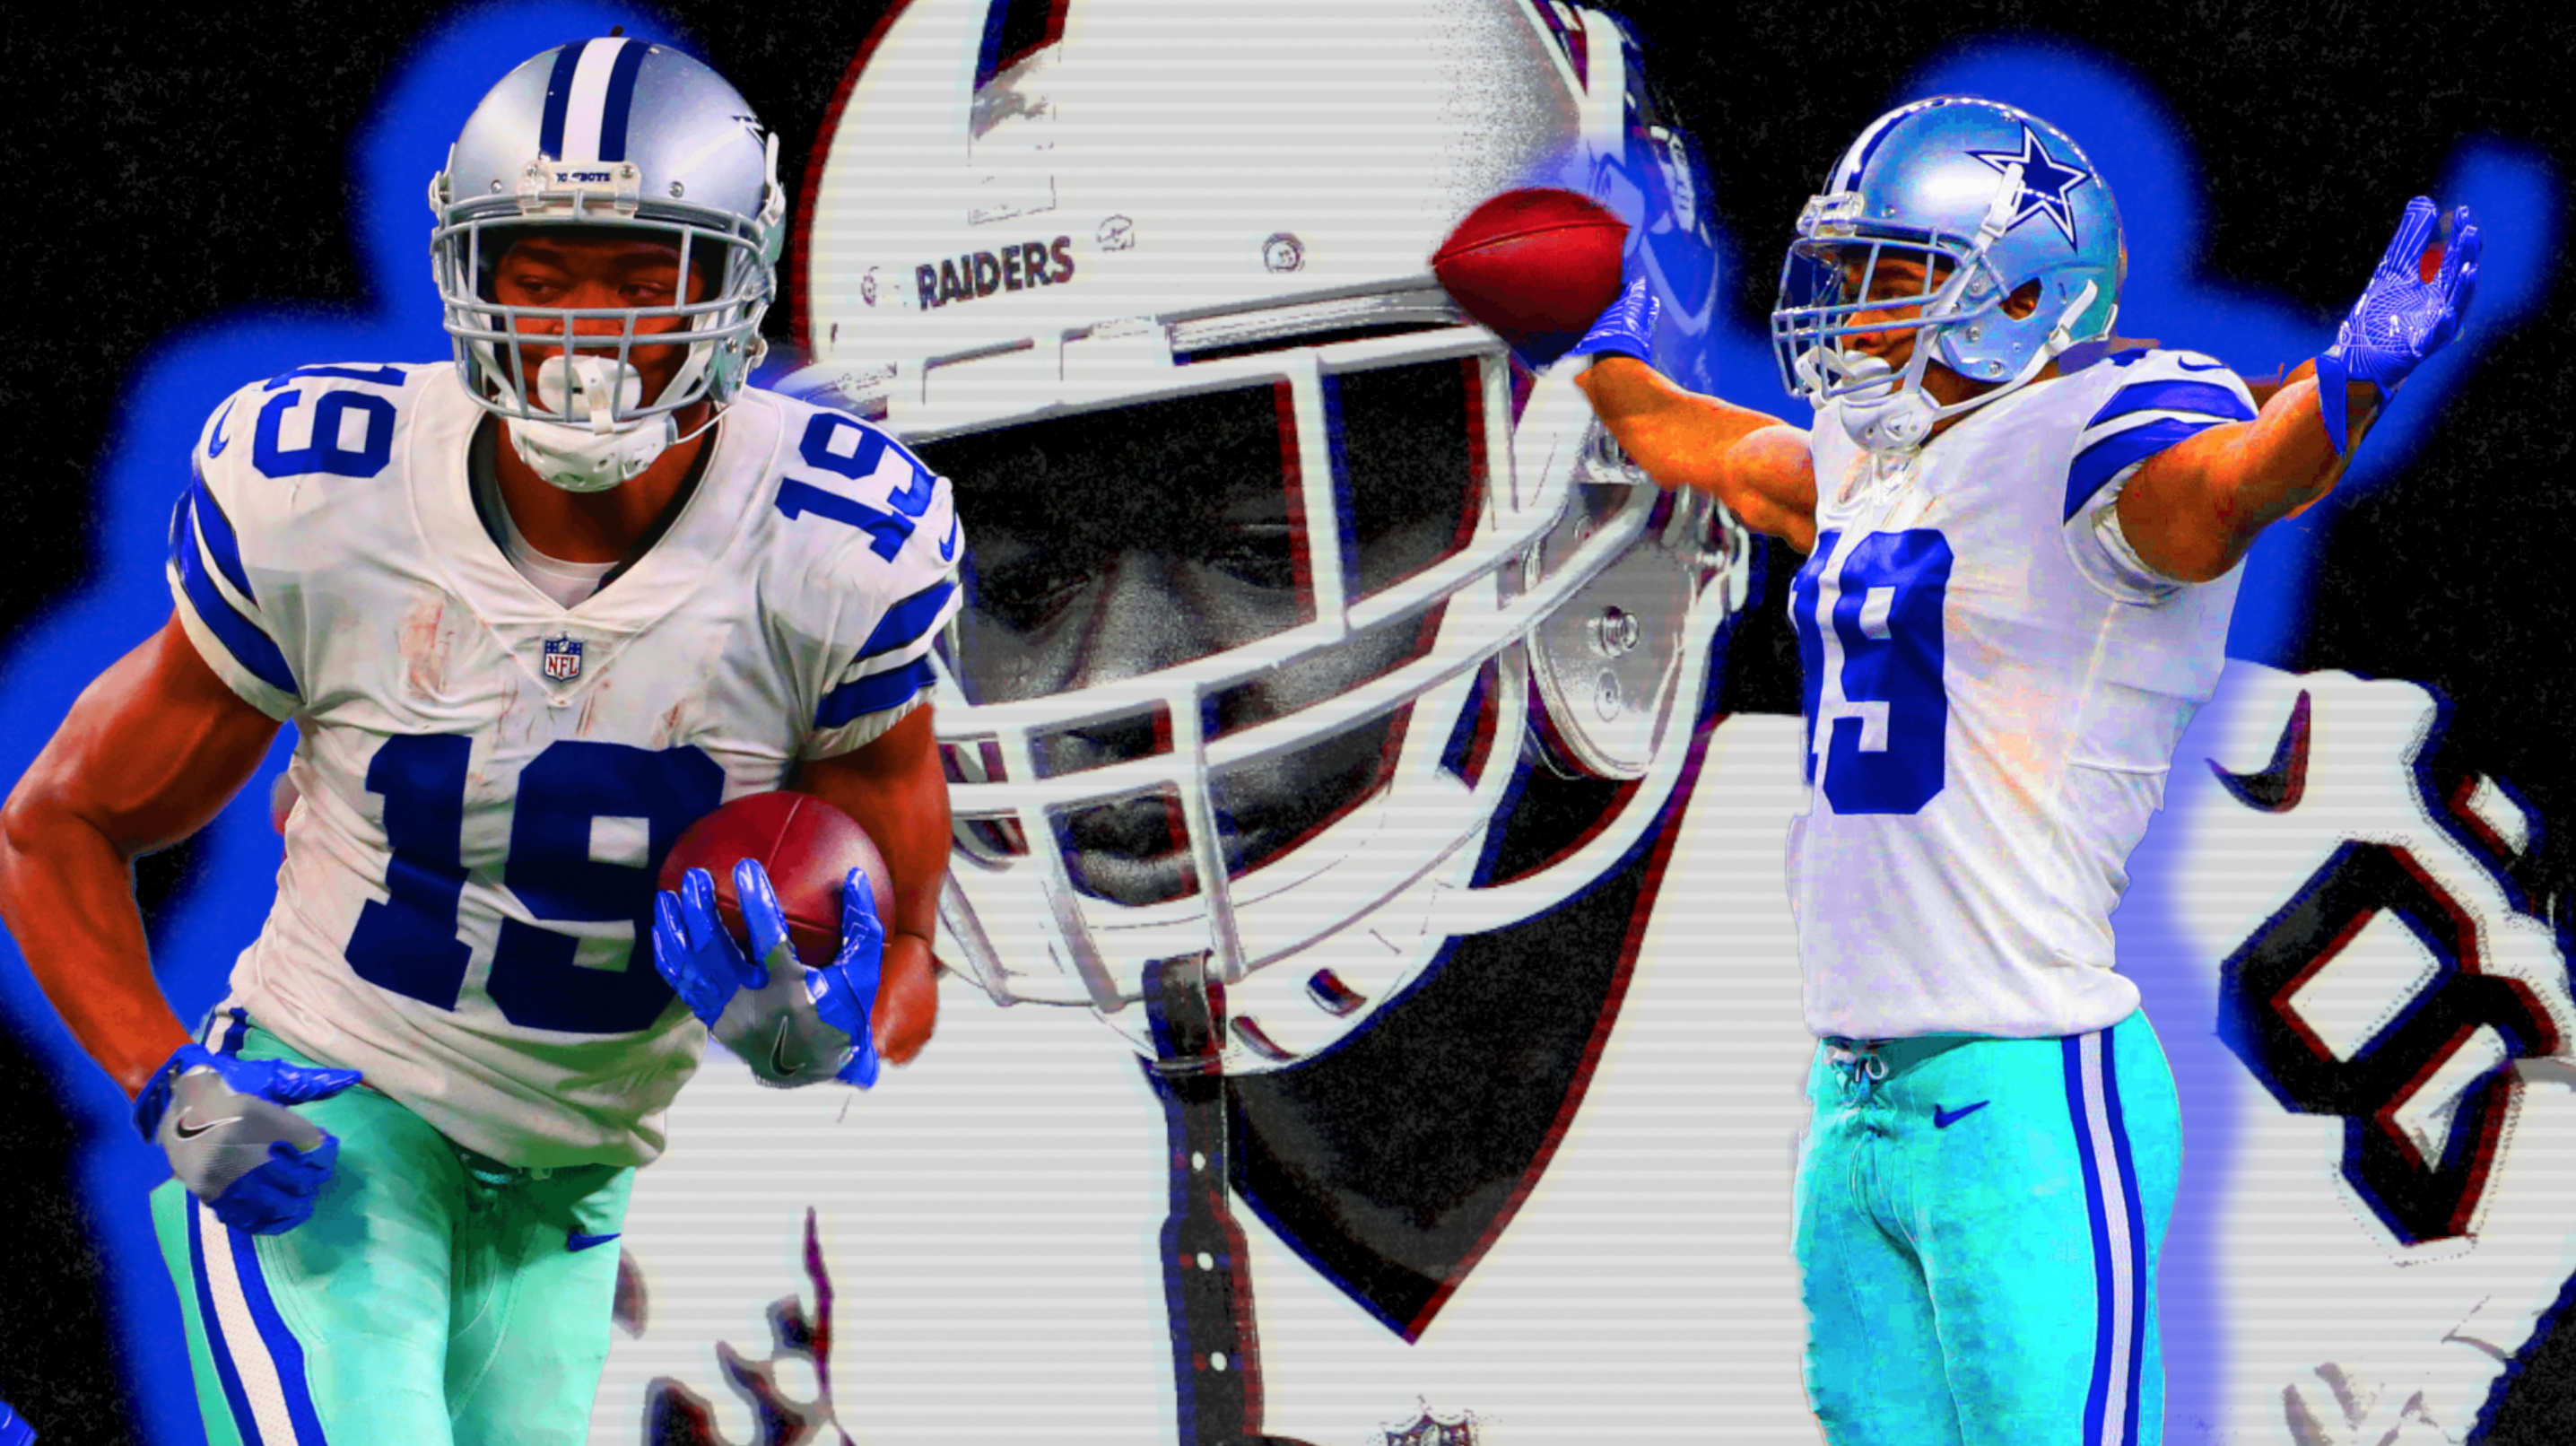 Best Nfl Teams 2019 NFL fan rankings: Cowboys, Patriots are best, according to study